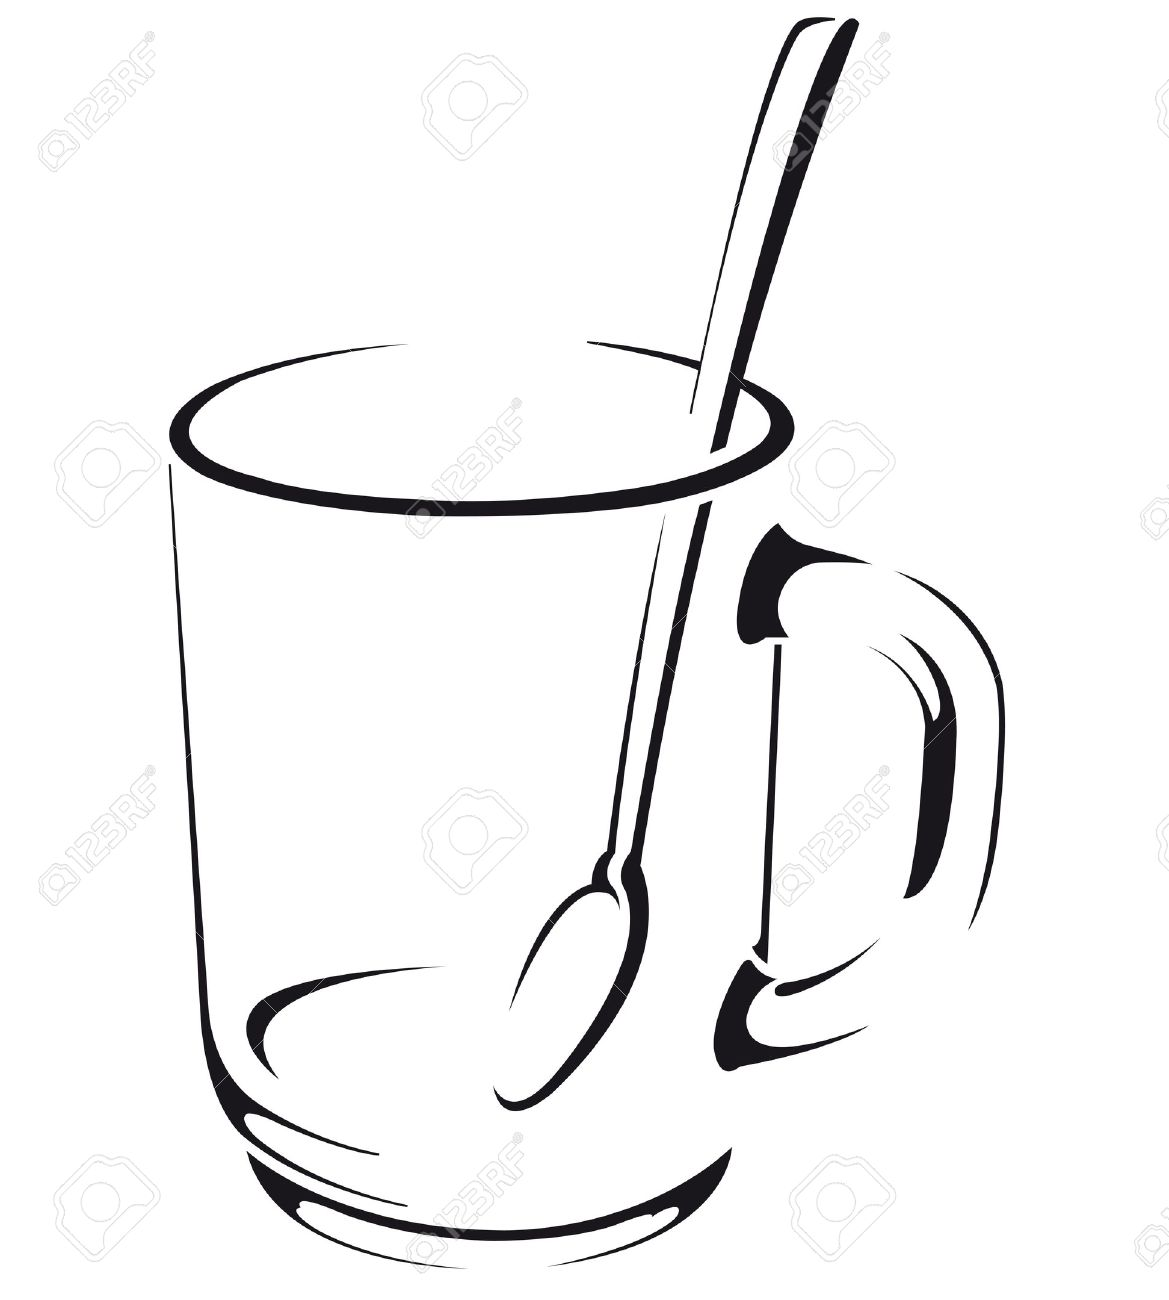 Inside Cup Clipart